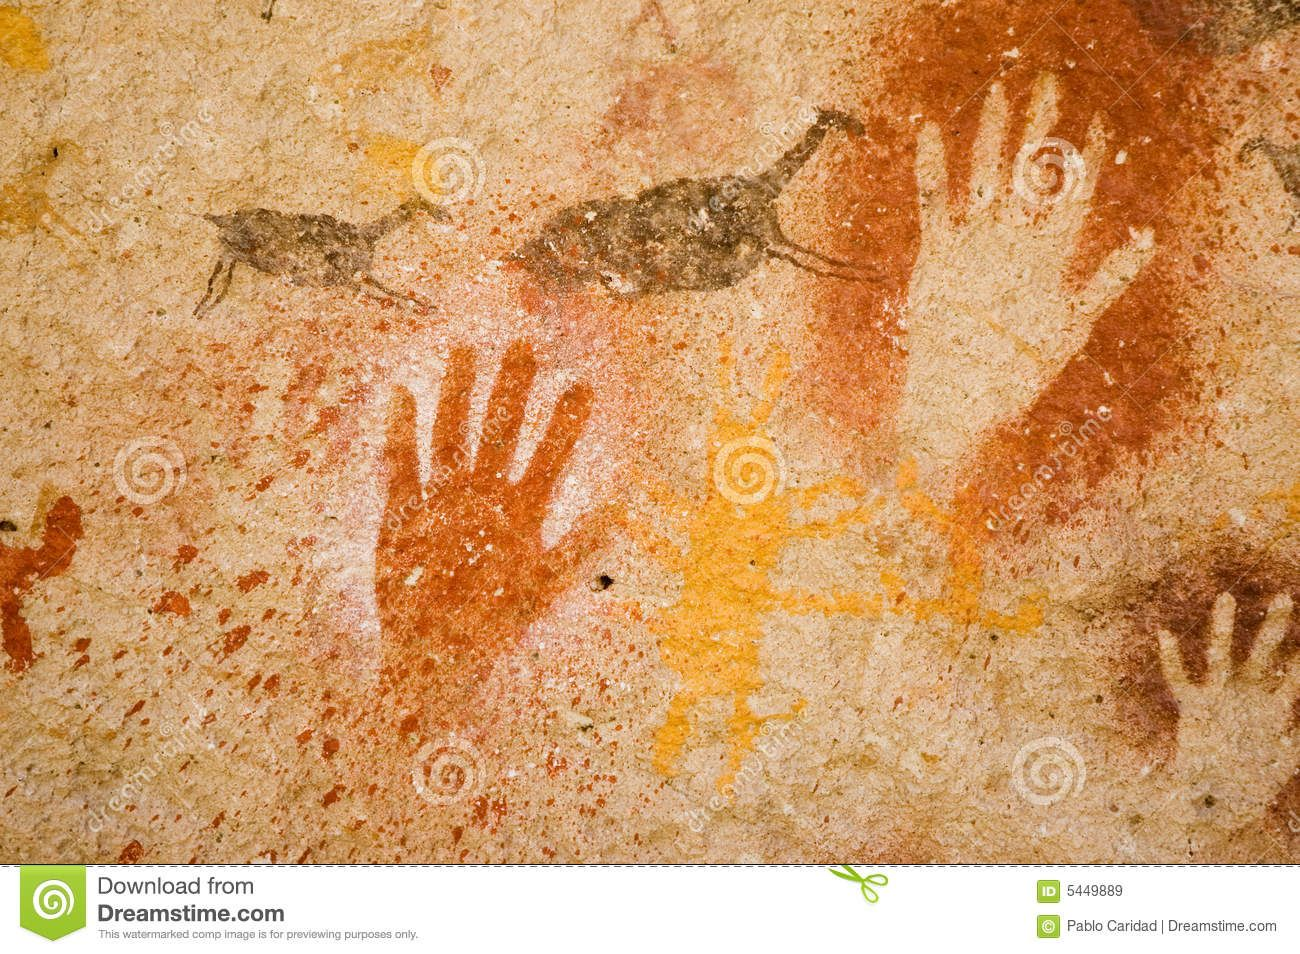 Photo About Ancient Cave Paintings In Patagonia Southern